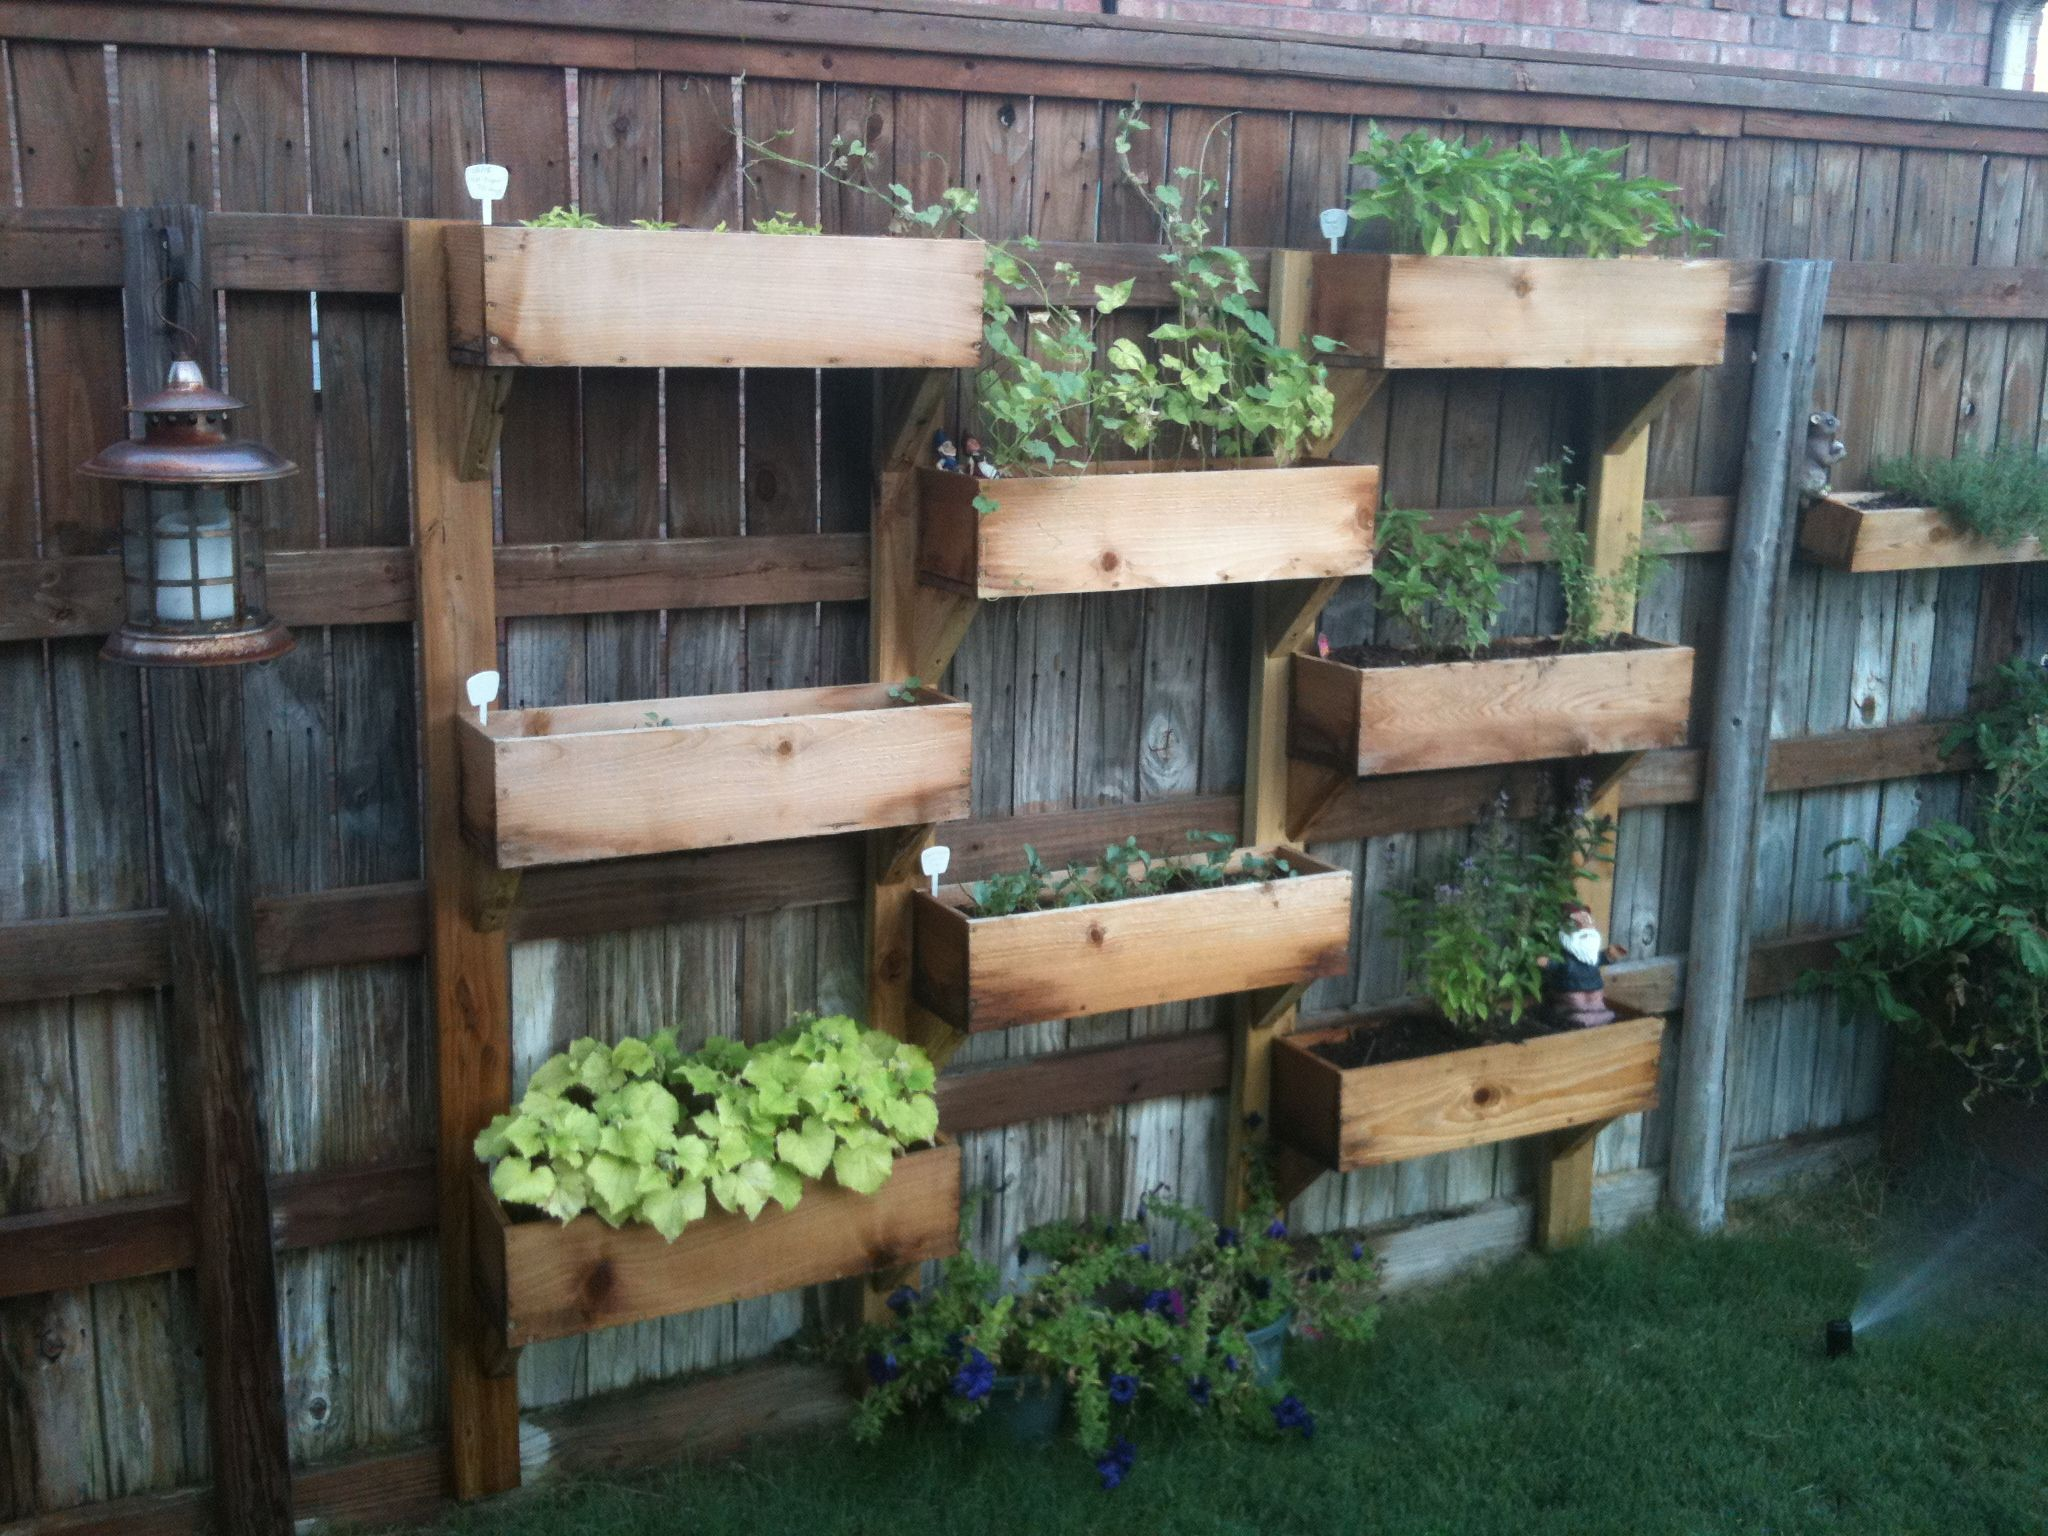 This is another take on raised garden beds with a vertical garden